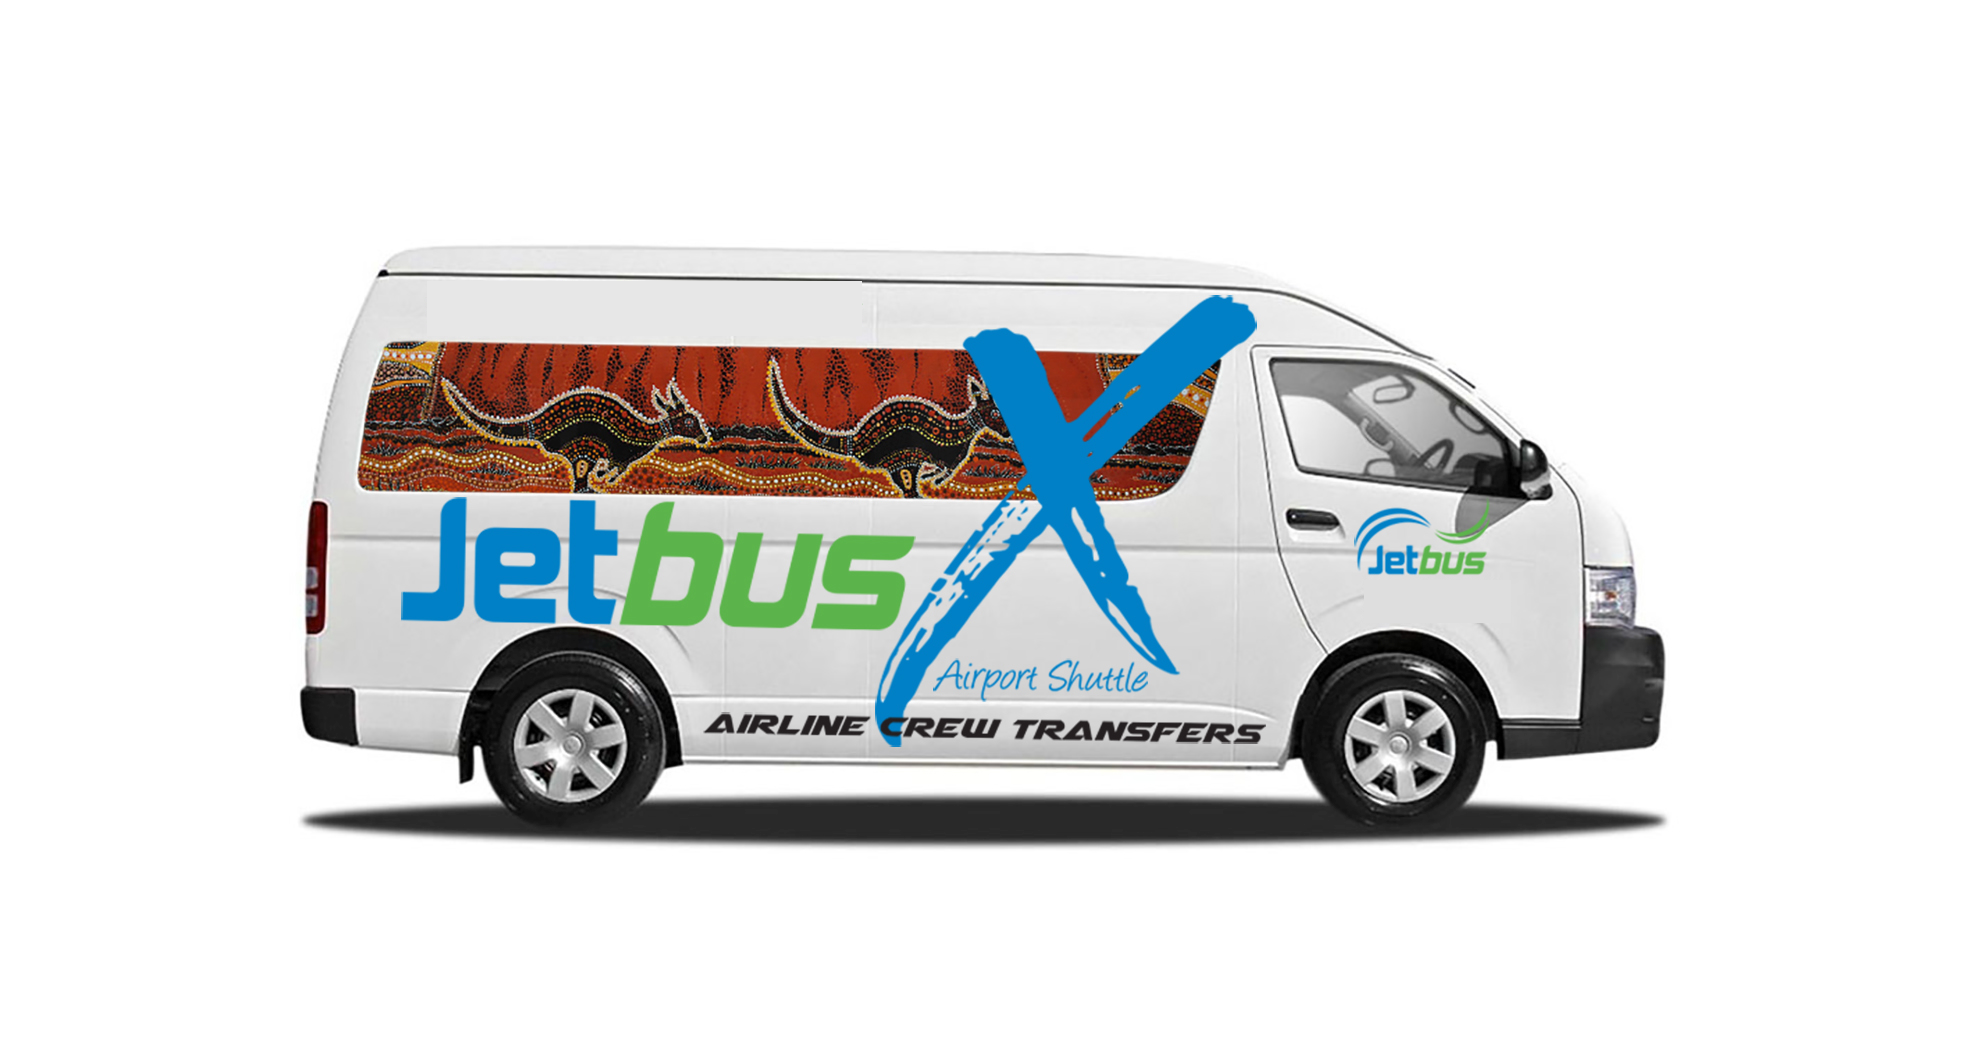 Jetbus X Airport Shuttle vehicle 1